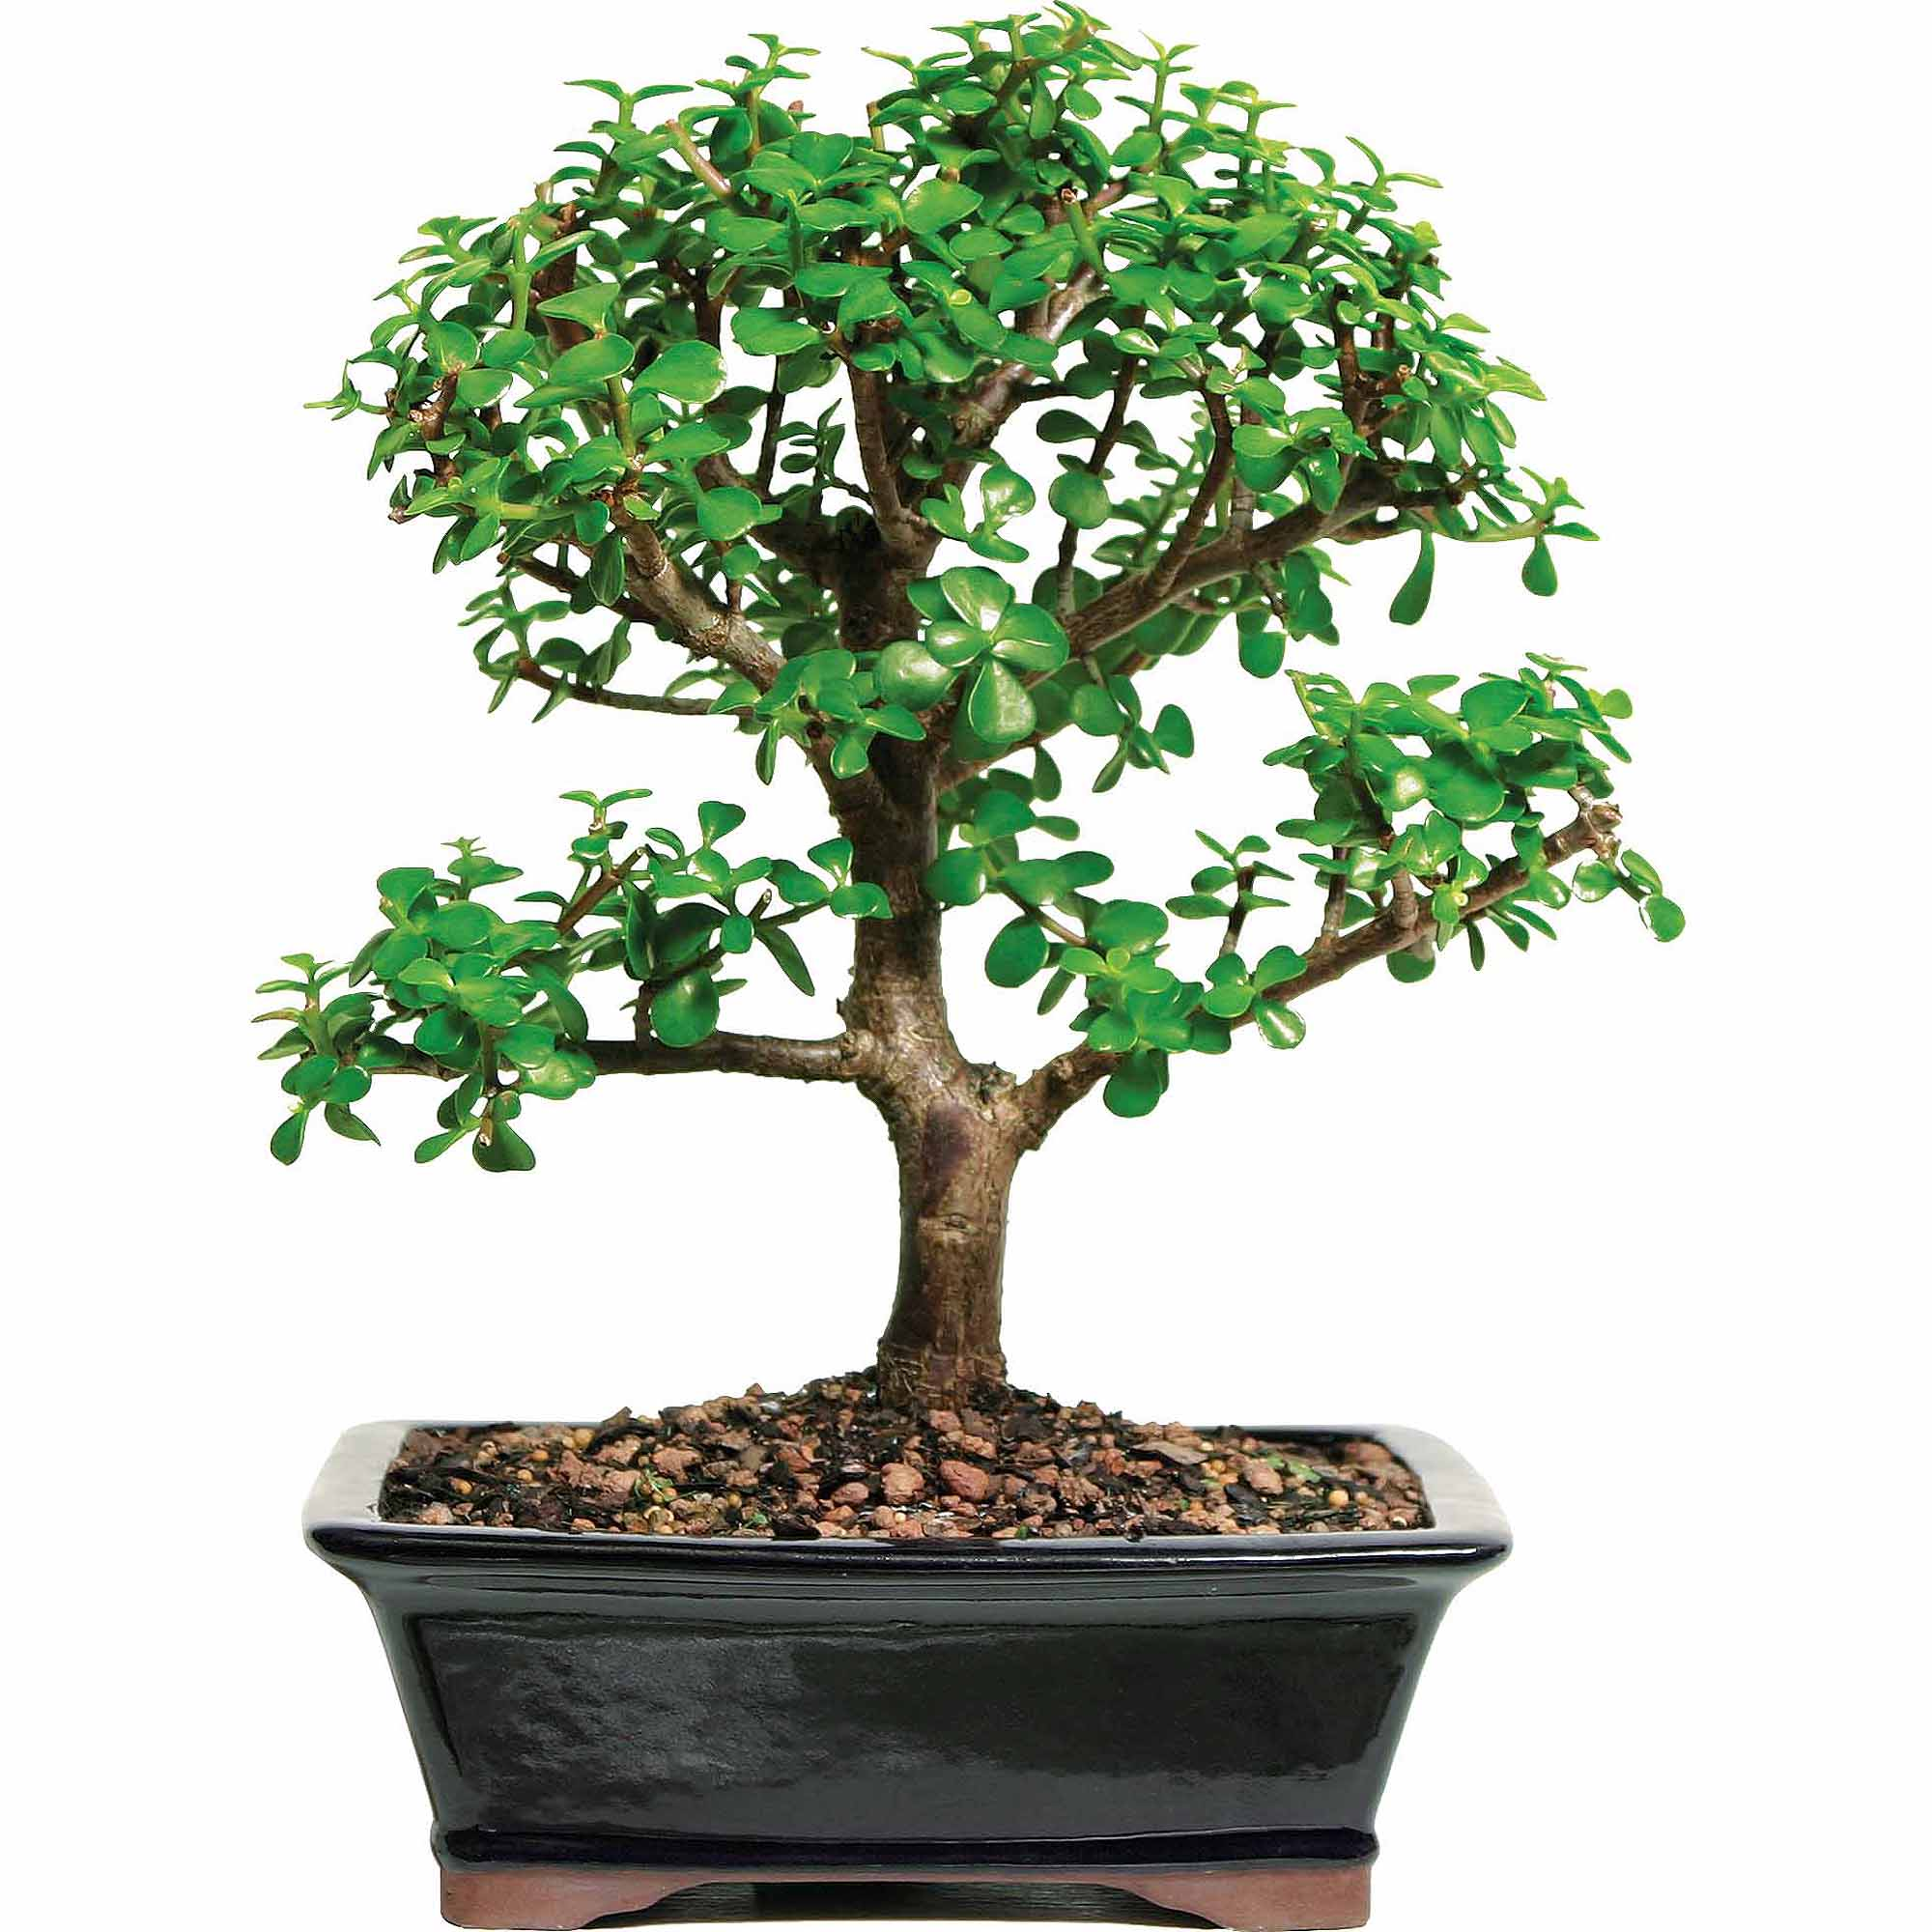 Jade Bonsai Tree by Brussel's Bonsai